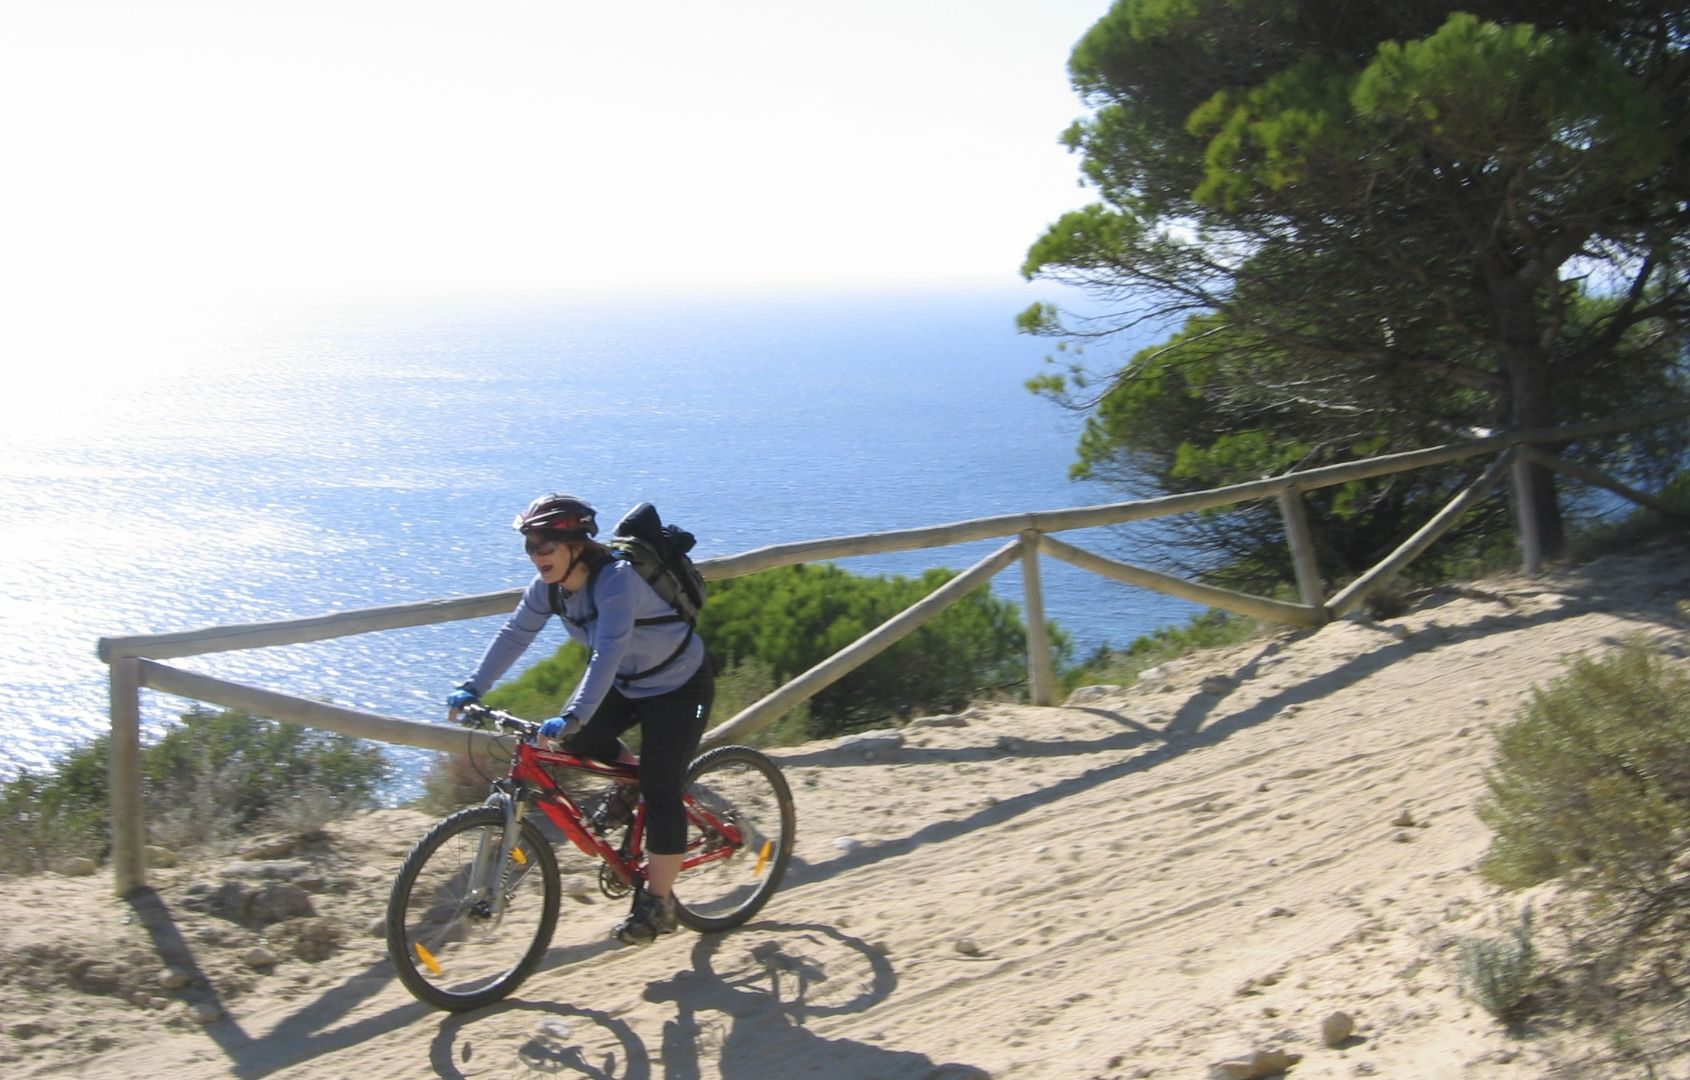 tourer 163.jpg - Southern Spain - Sierras to the Sea - Self-Guided Leisure Cycling Holiday - Leisure Cycling